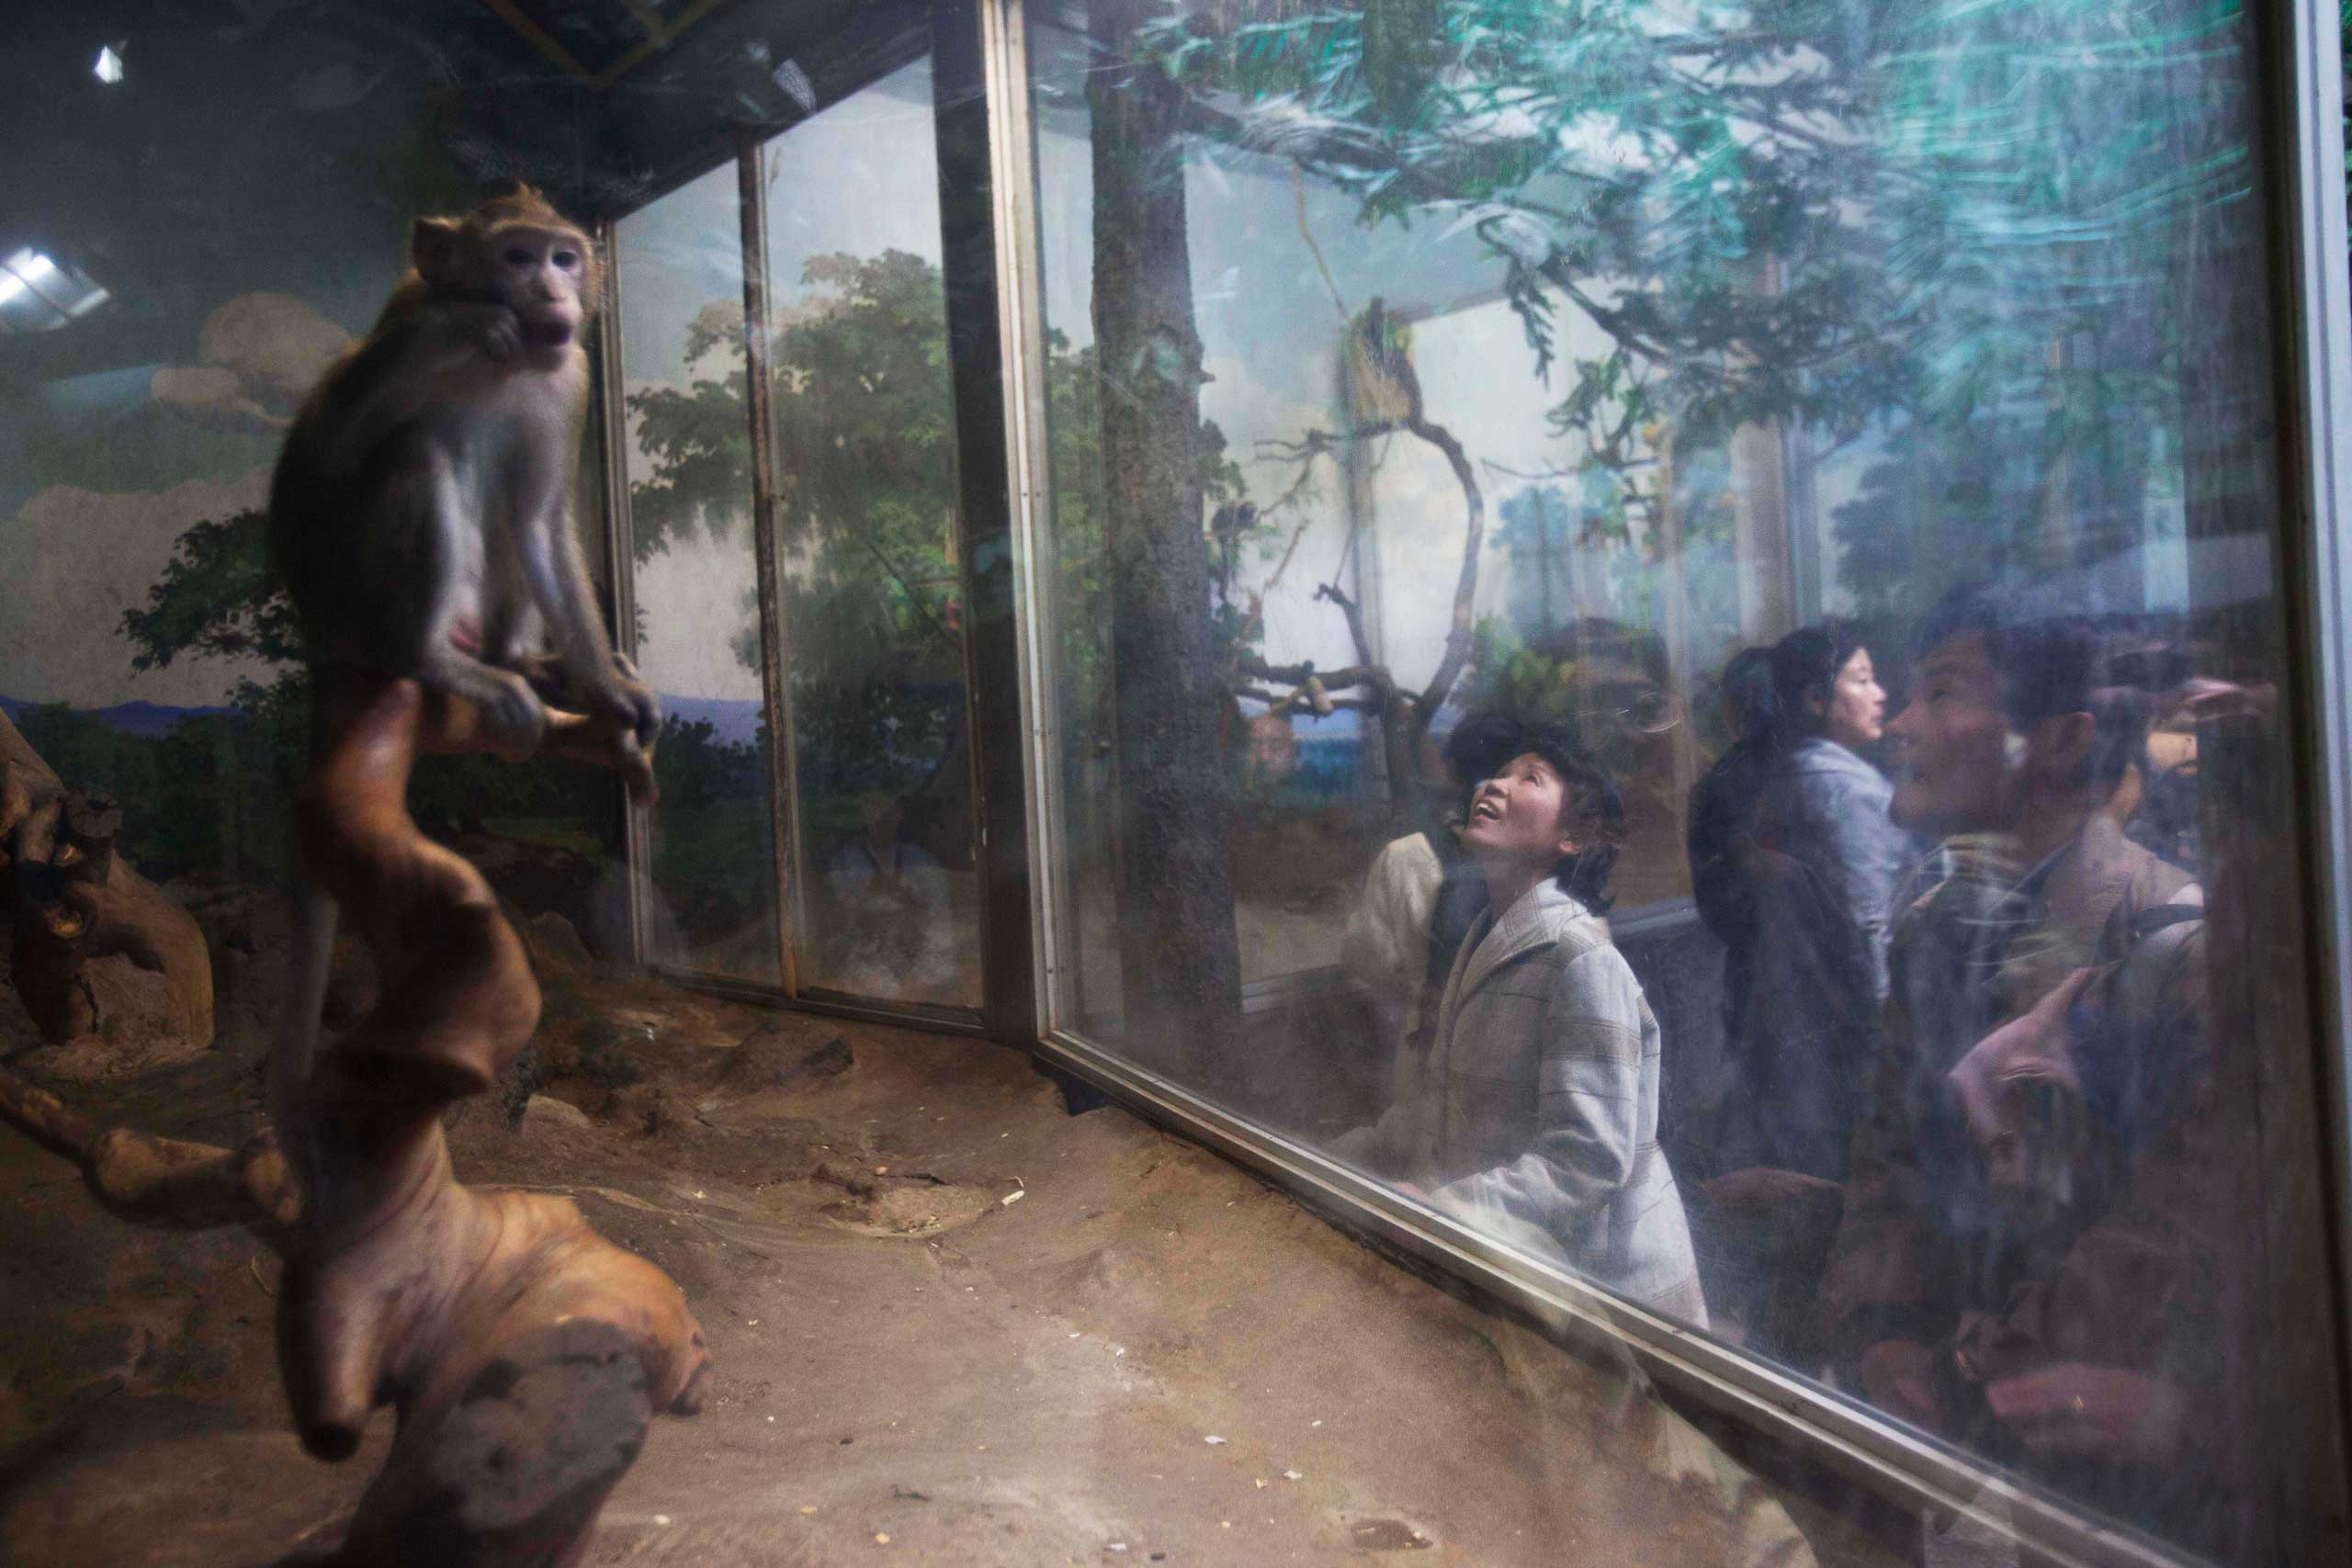 April 22, 2011. A woman looks at monkeys behind a glass enclosure at the central zoo in Pyongyang.